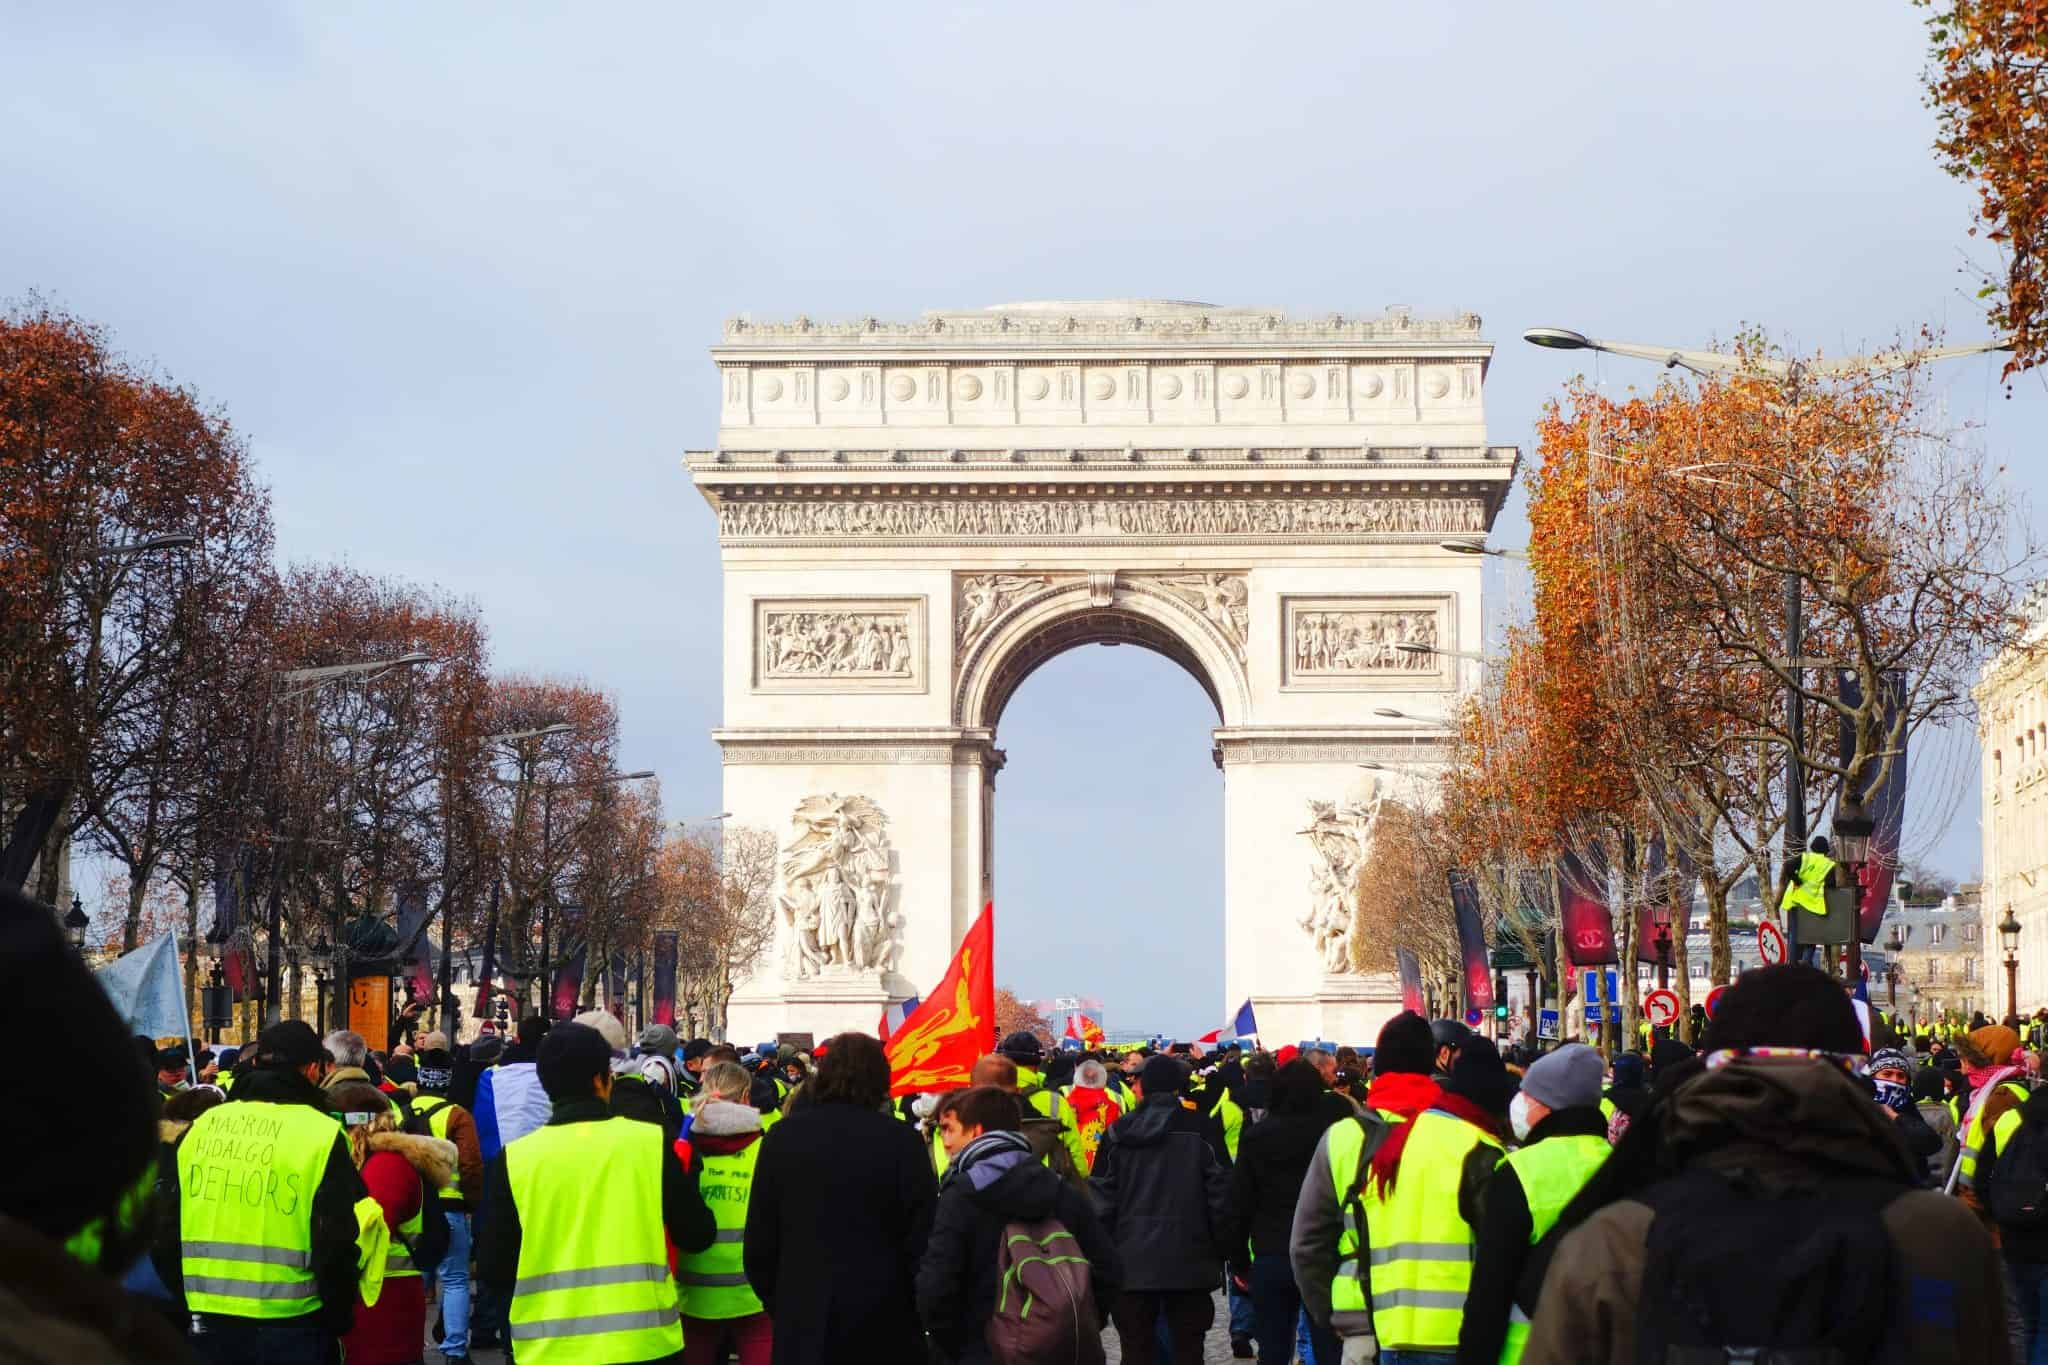 A Yellow-Vest demonstration in Paris - something to watch out for if you're visiting Paris for the first time